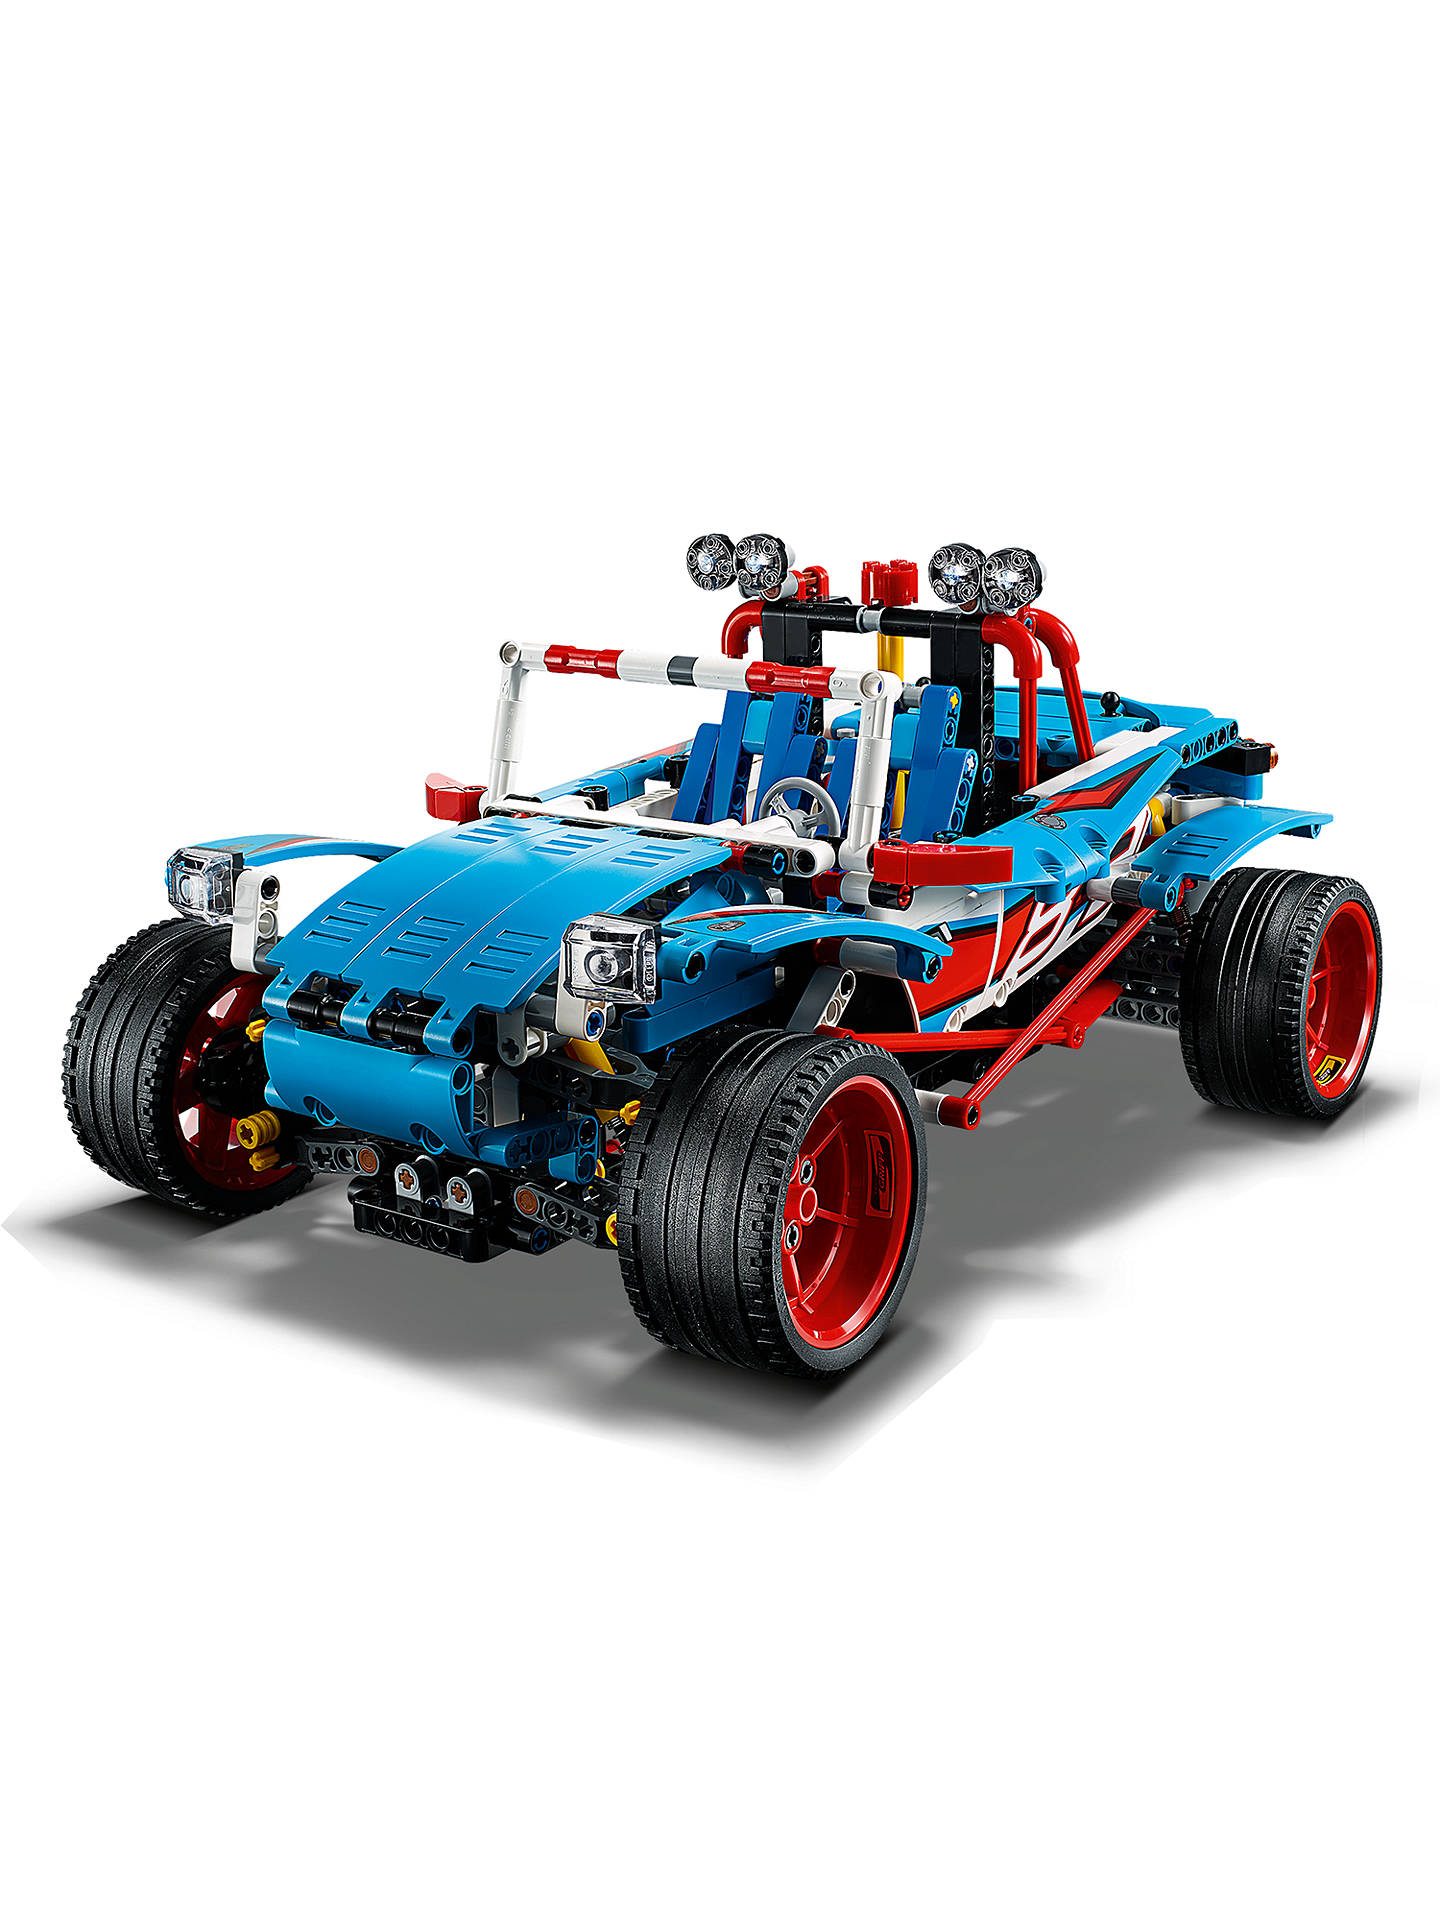 LEGO Technic 42077 2-in-1 Rally Car and Buggy